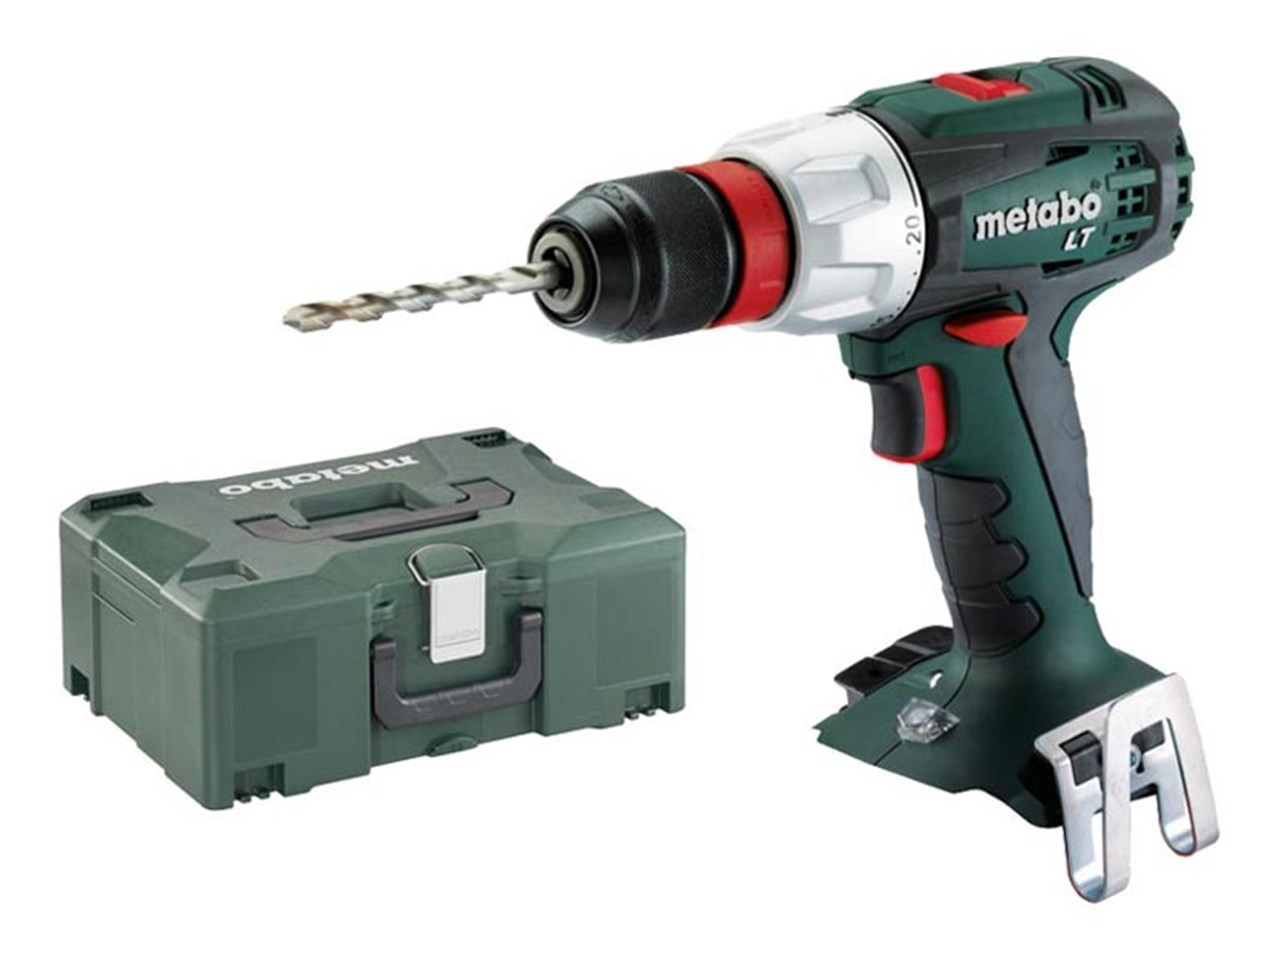 metabo bs18ltquick 18v cordless drill driver bare unit and metaloc. Black Bedroom Furniture Sets. Home Design Ideas